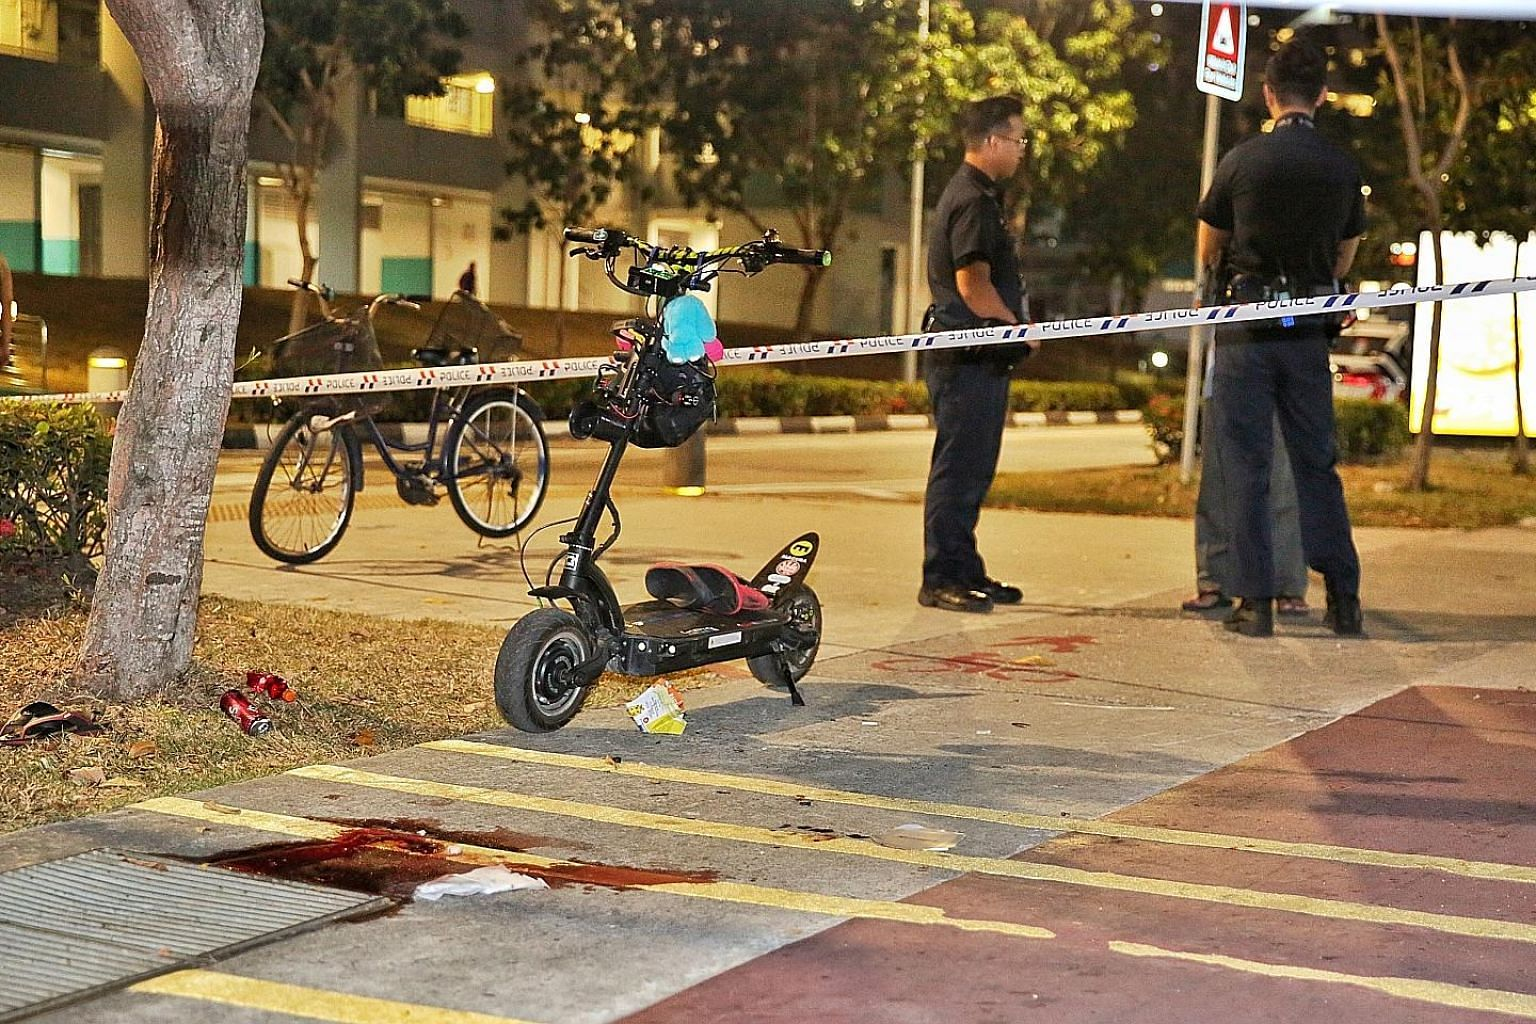 Photographs of the scene of the accident in Bedok North show bloodstains on the pavement next to the cycling path. PHOTO: SHIN MIN DAILY NEWS